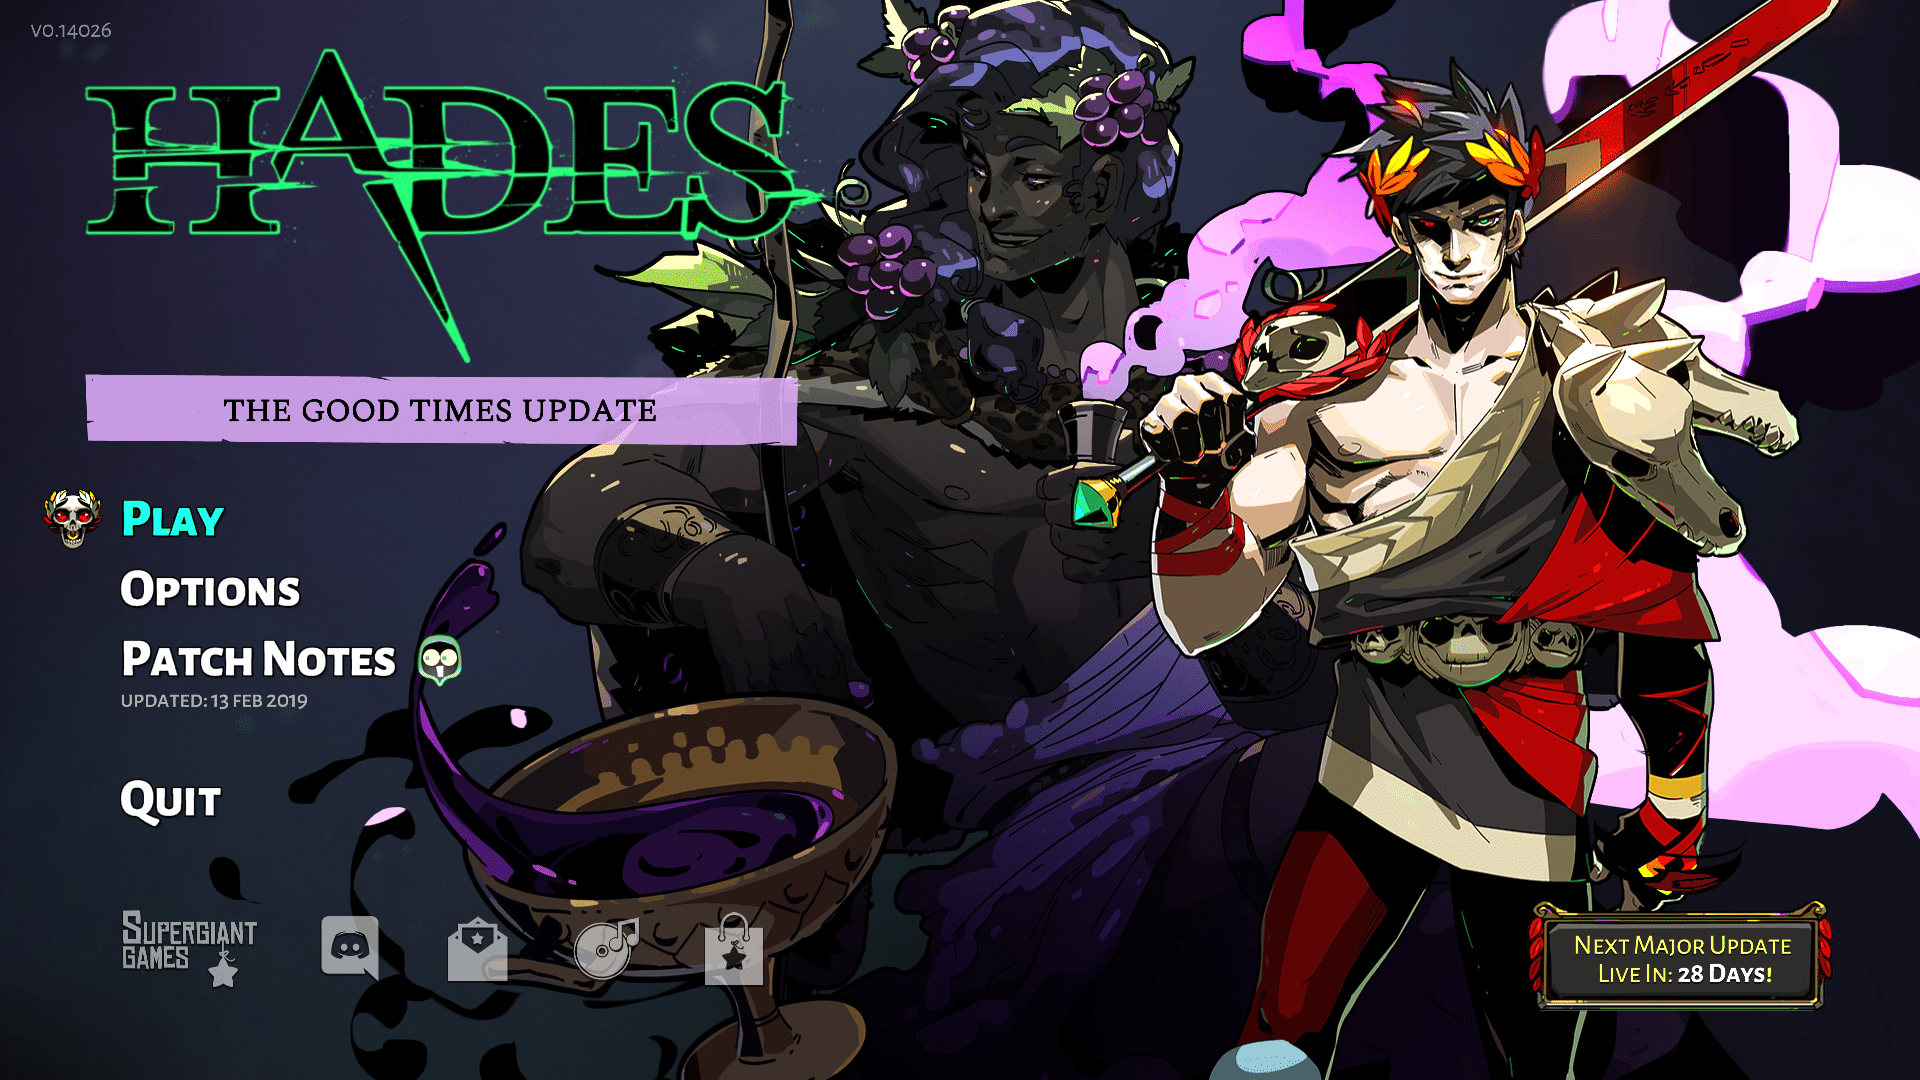 Hades The Good Times Update - A Detailed Look - BuffNerfRepeat